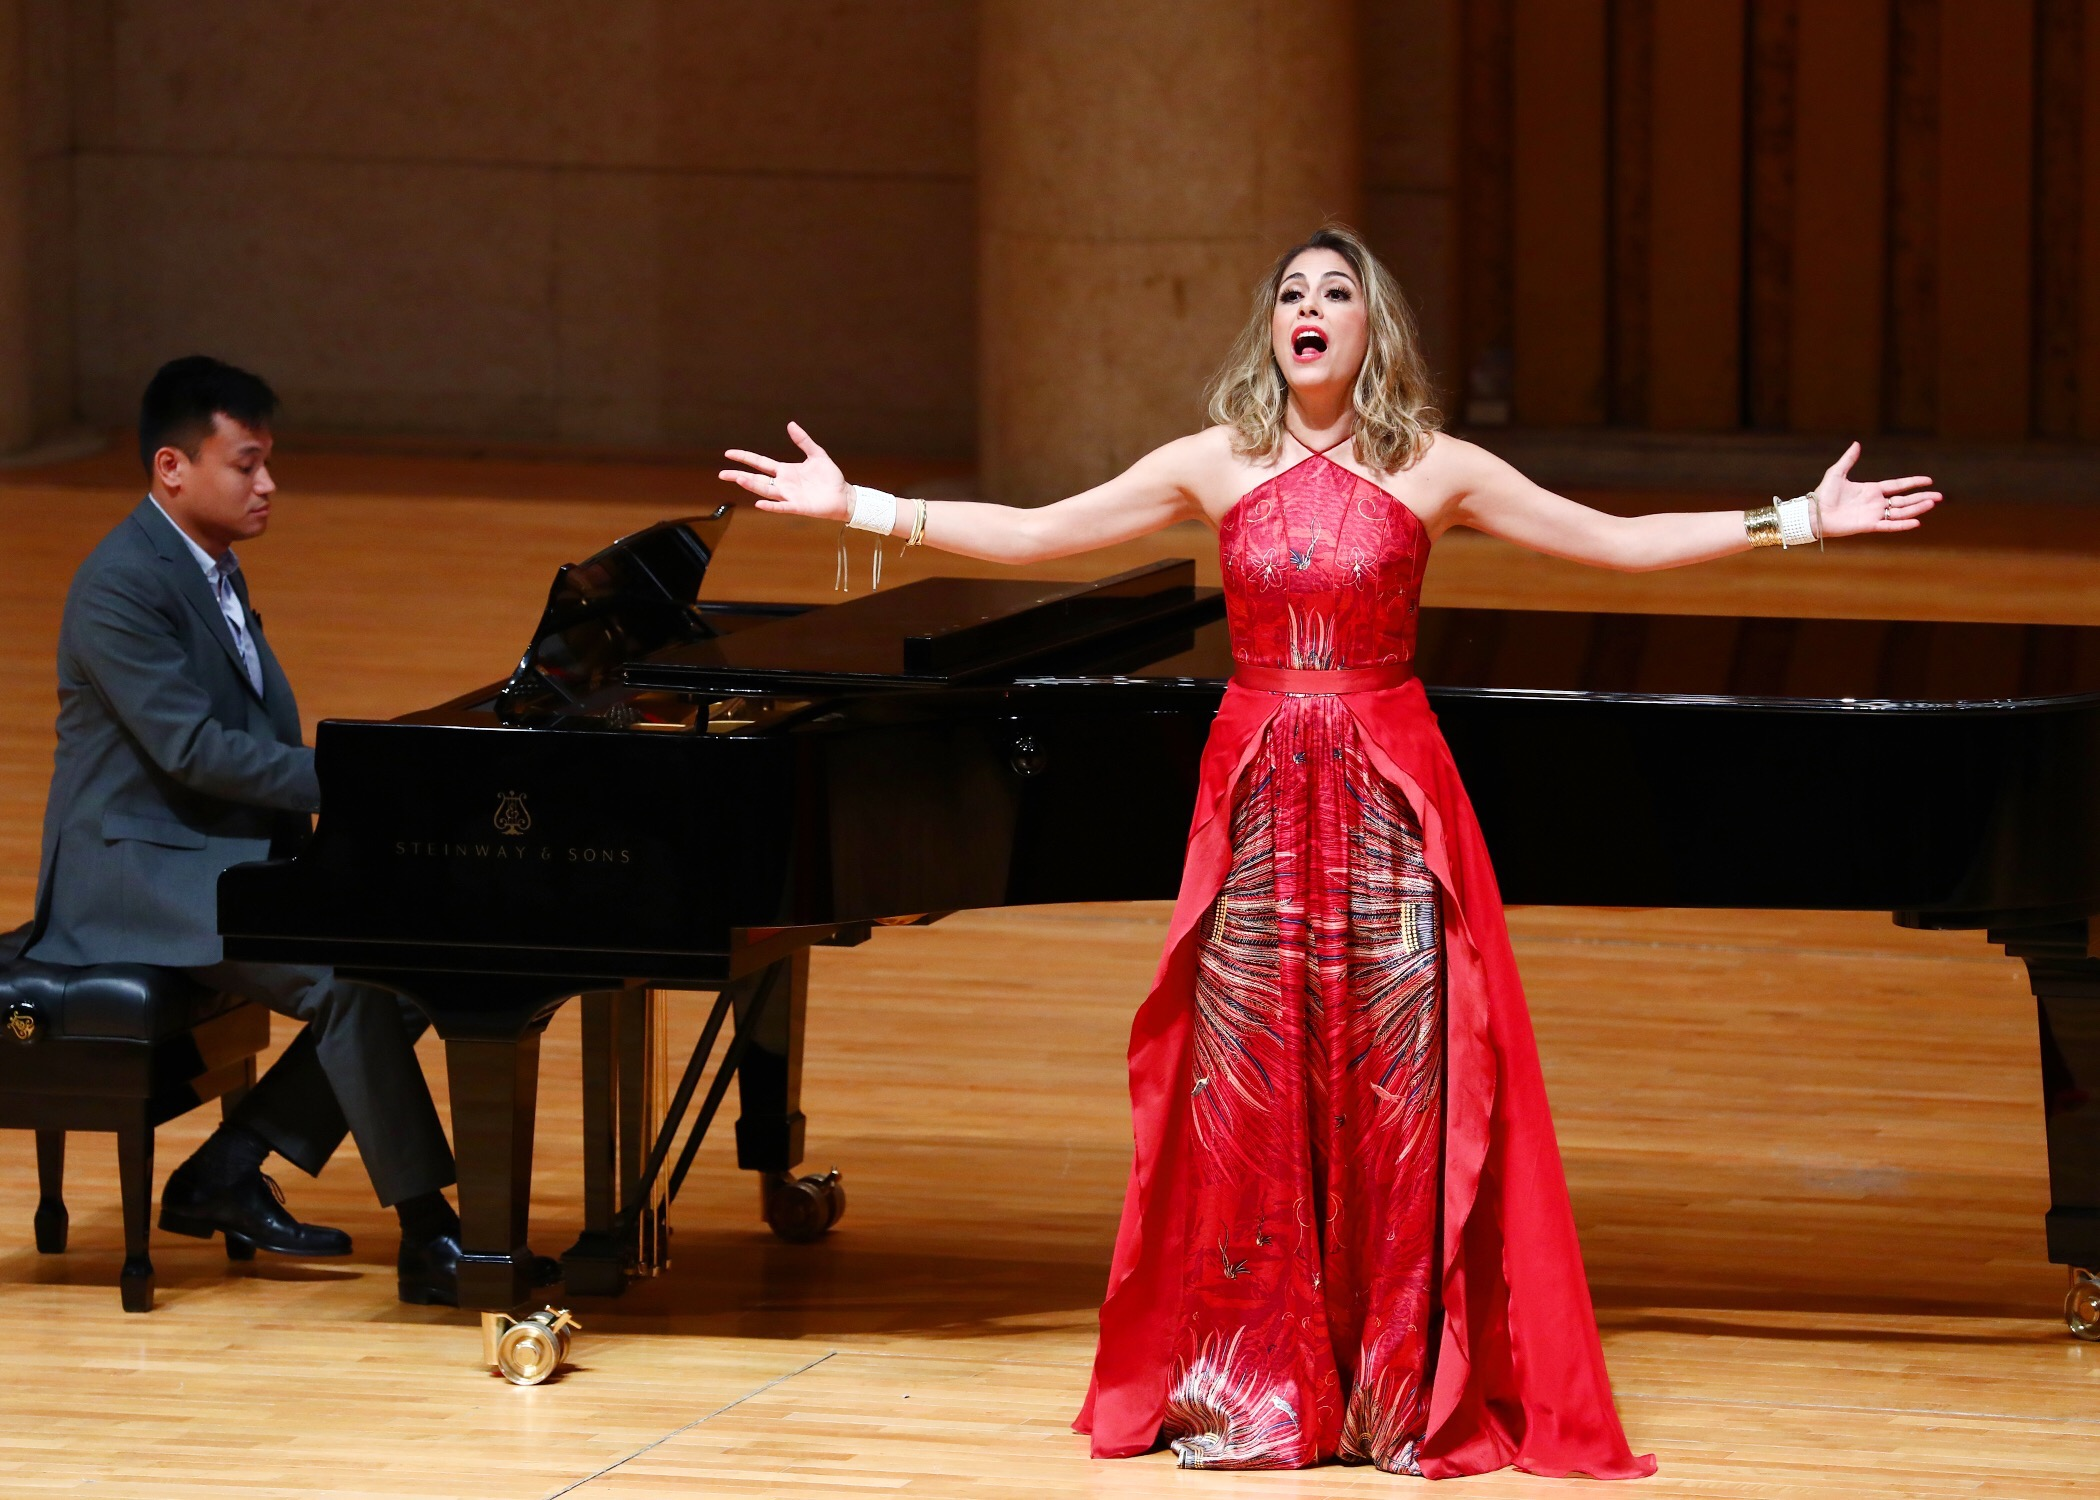 performing at Forbidden City Concert Hall in Beijing, China